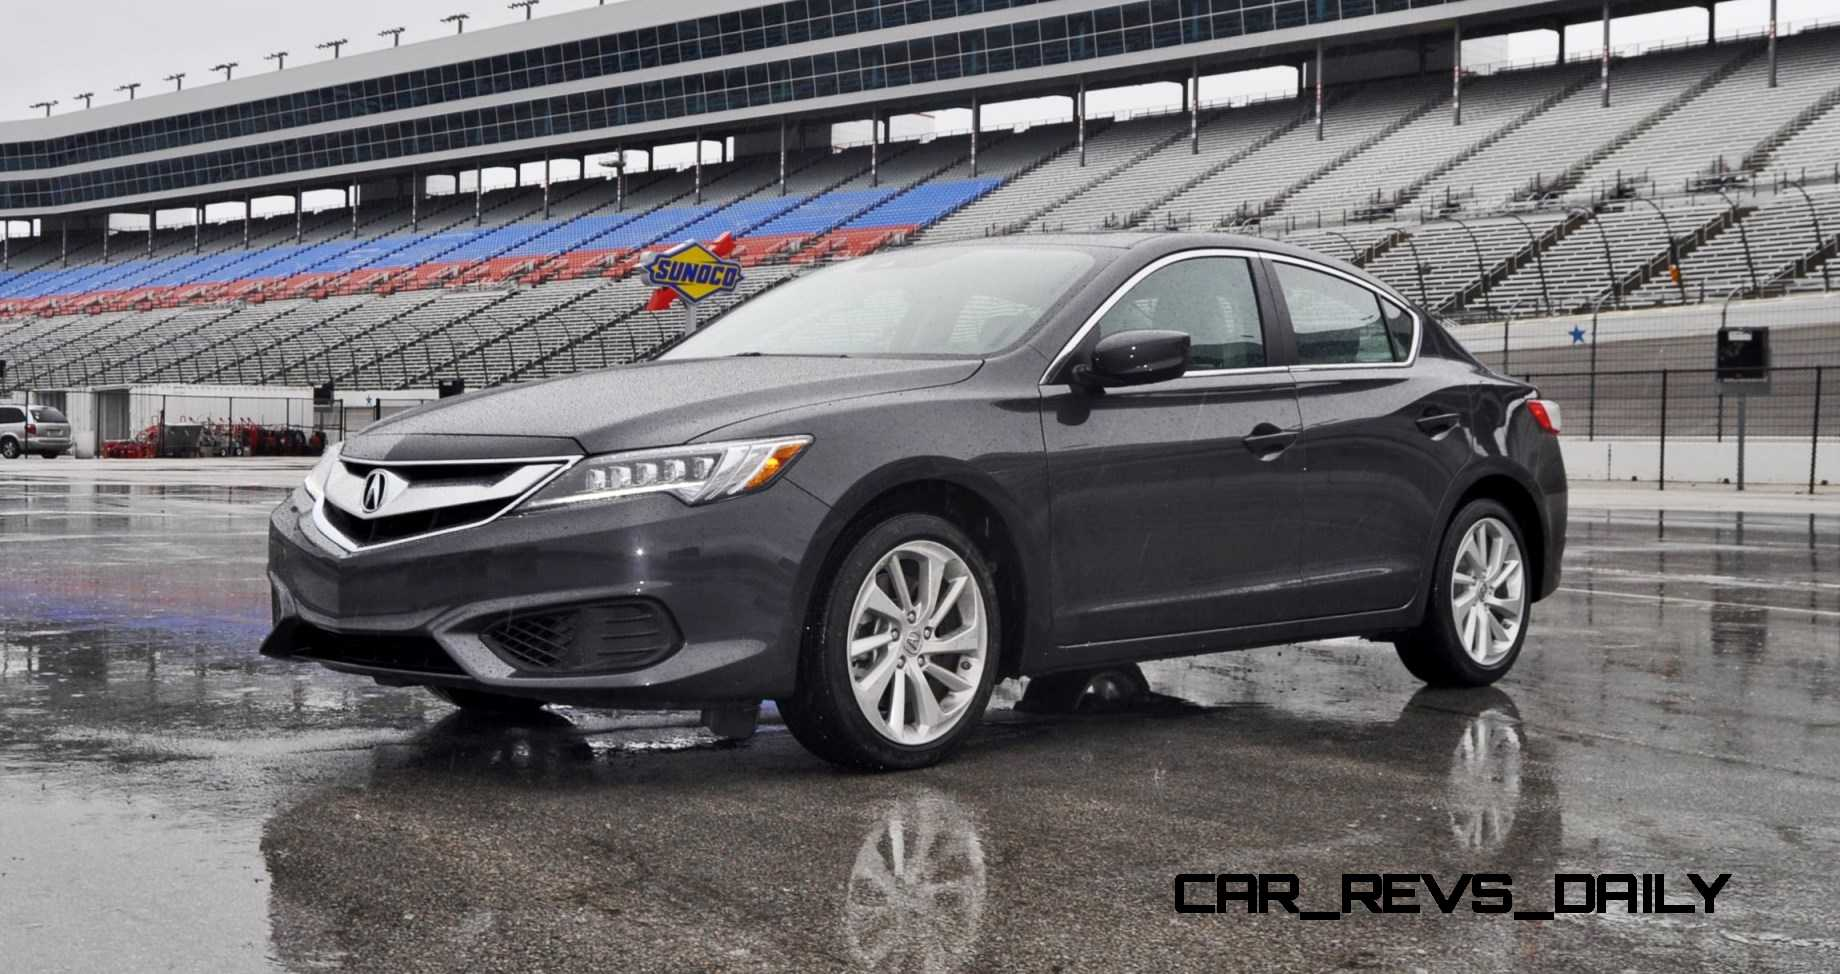 critic com watch hammes steve youtube ilx review by acura spec a testdrivenow auto